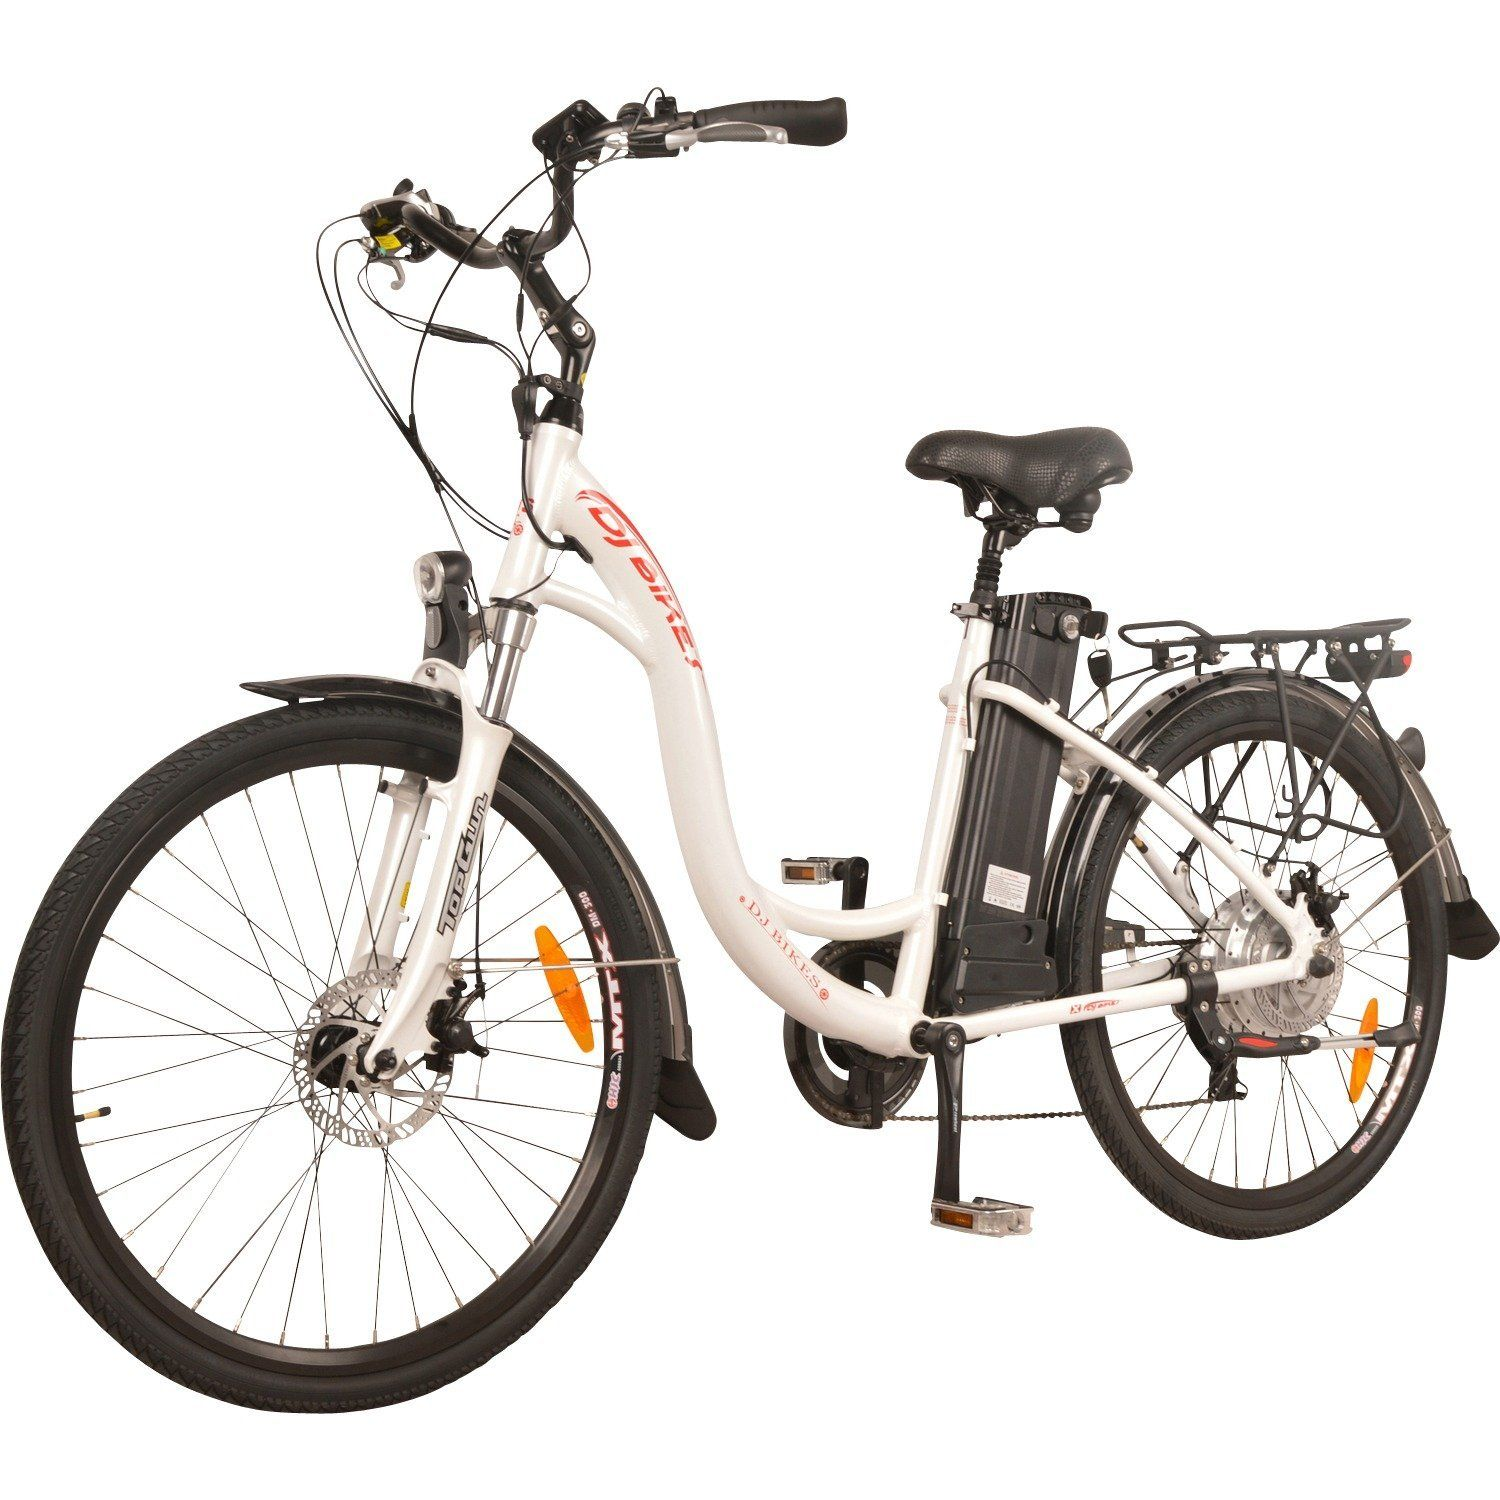 Dj Bikes City 500w 7 Speed Electric Bicycle 48v 13ah Lithium Ion